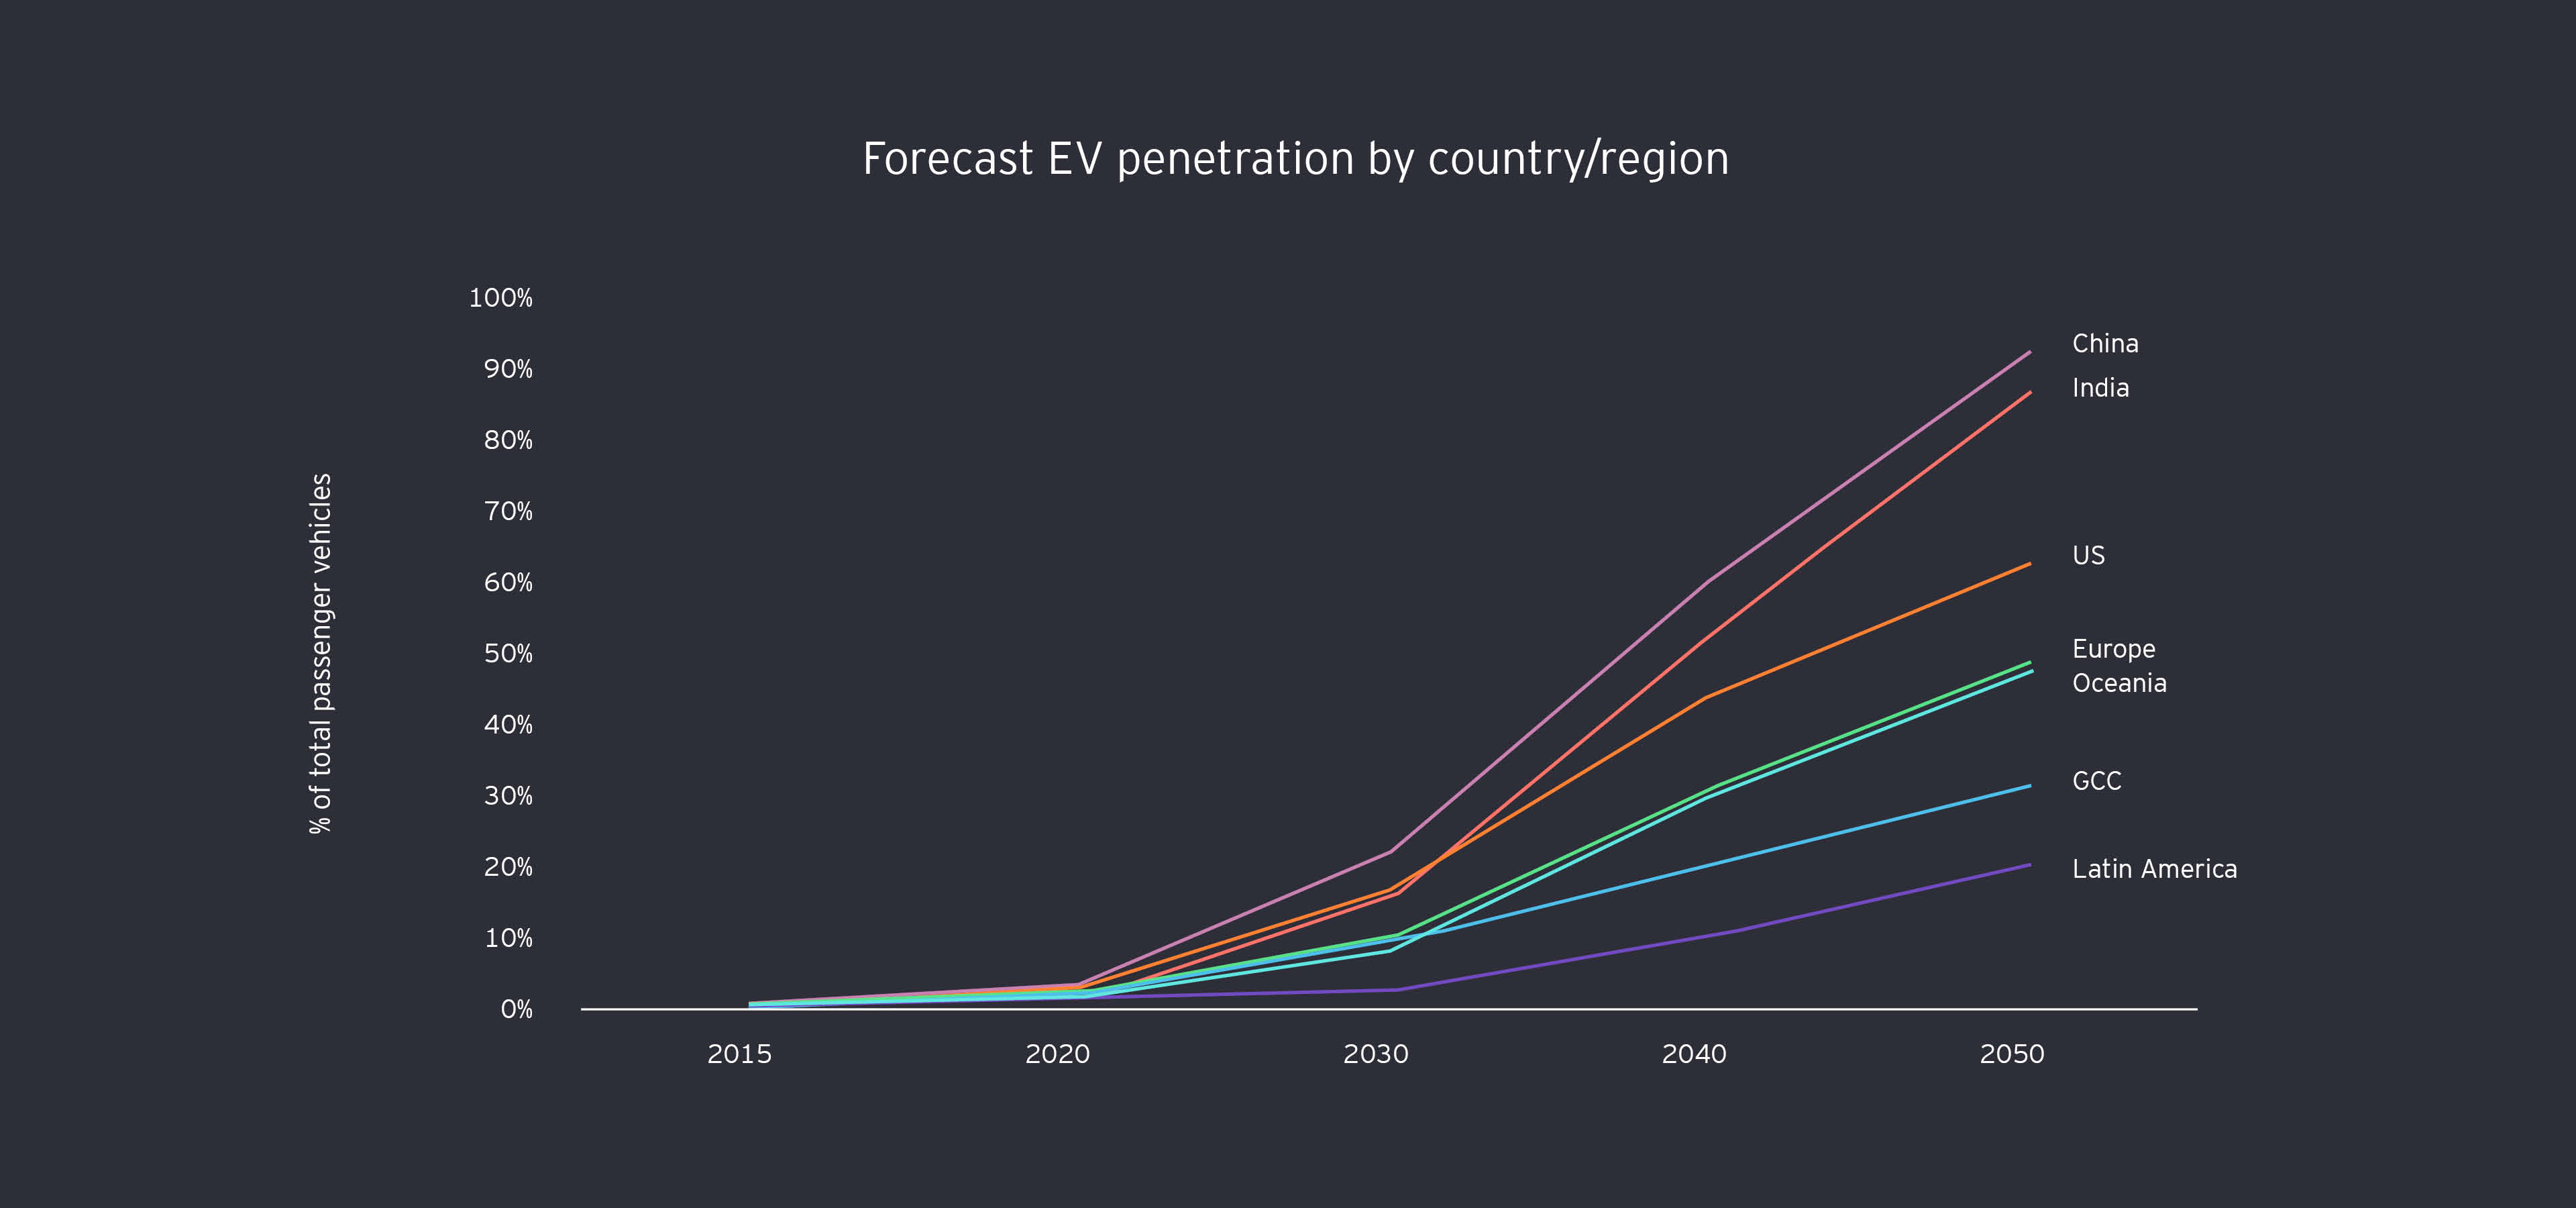 Forecast EV penetration by country/region graph